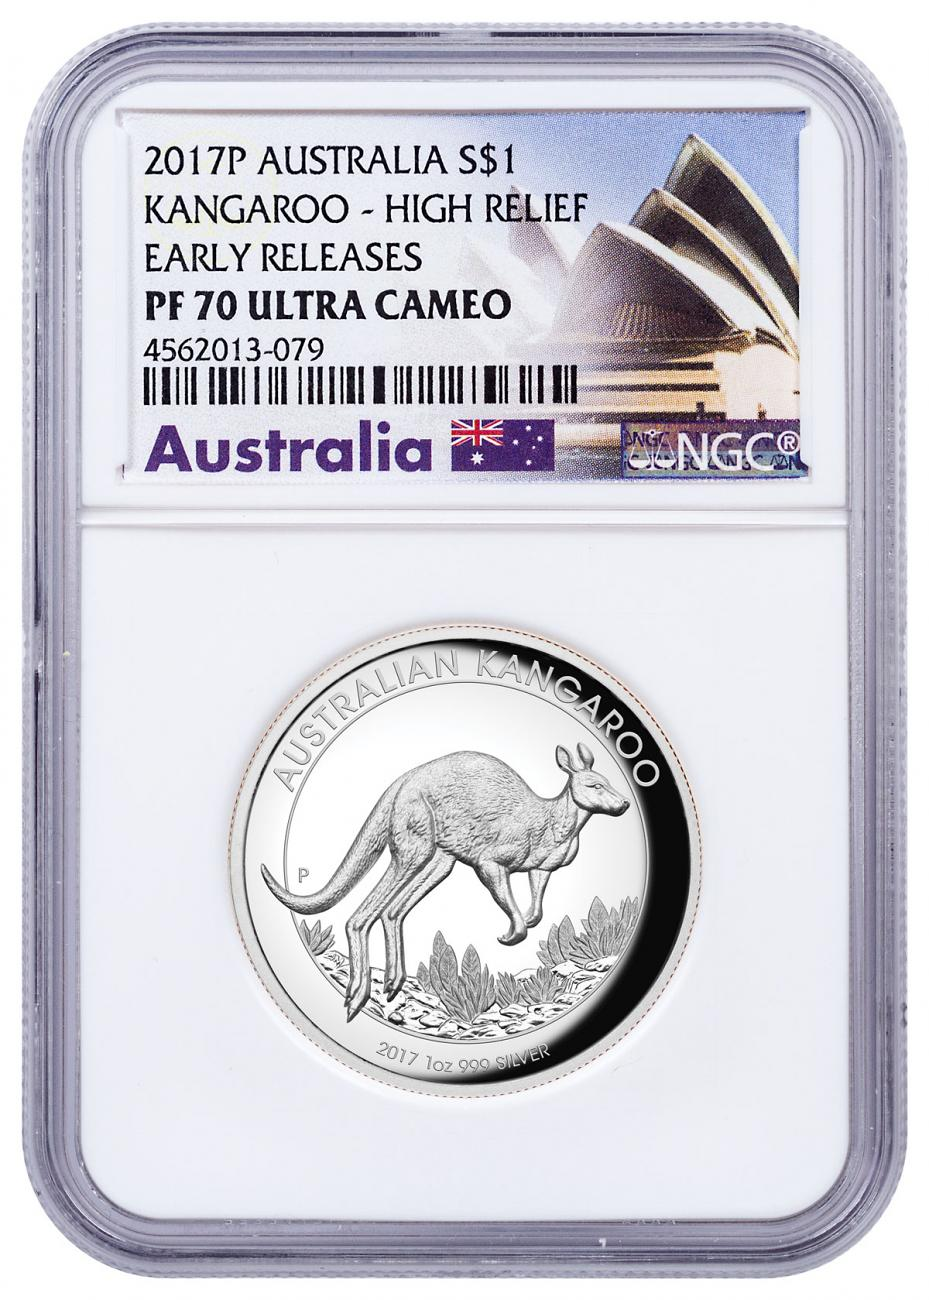 2017 Australia 1 oz High Relief Silver Kangaroo - Proof $1 Coin NGC PF70 UC ER Exclusive Australia Label